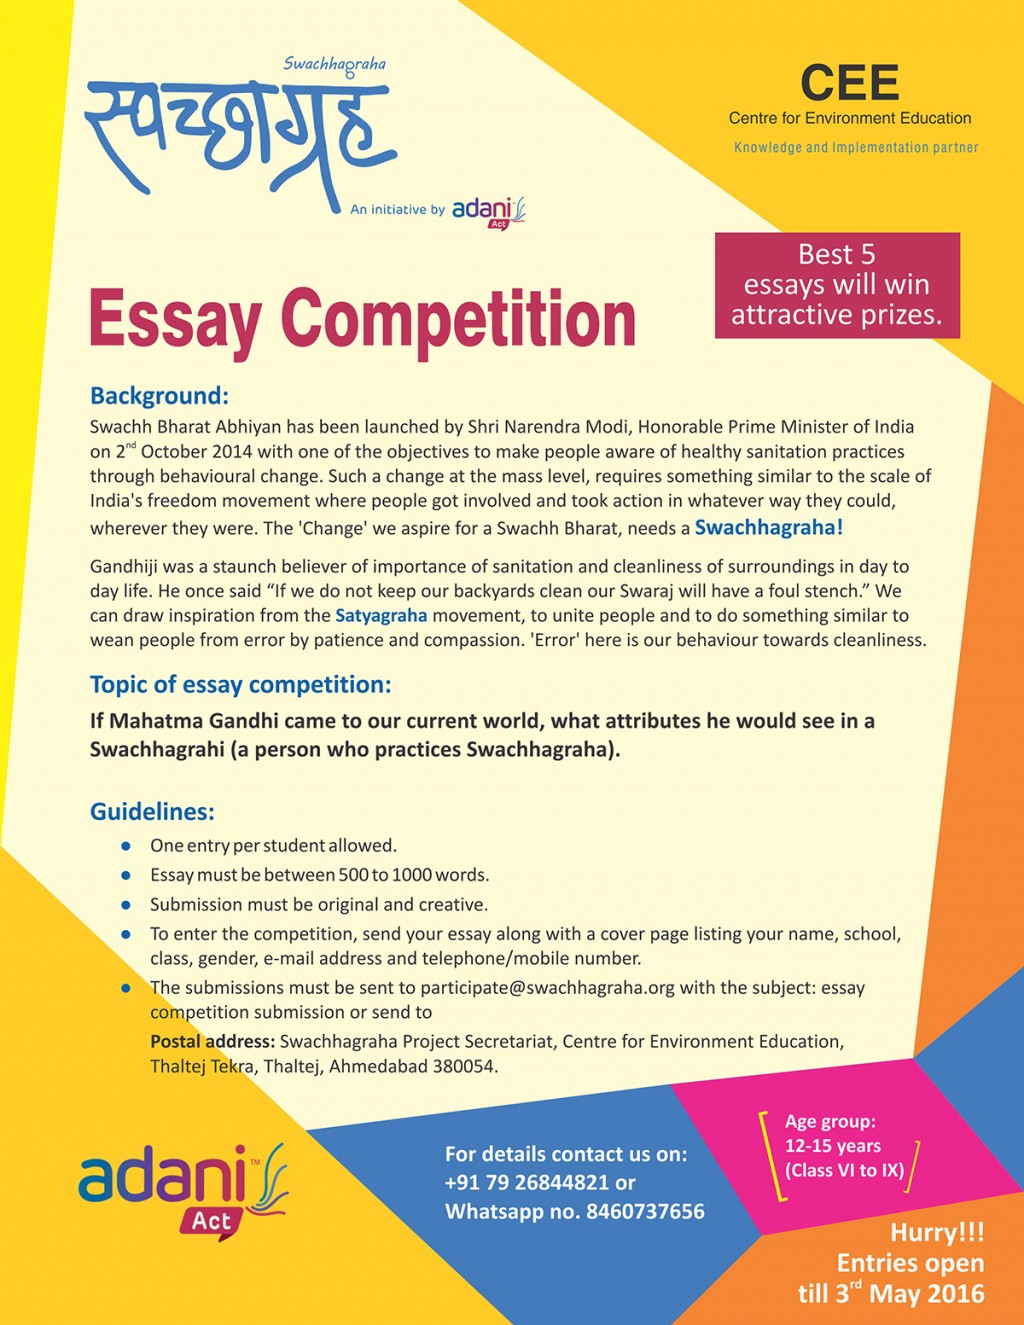 011 20180129171946essay20competition Essay About Cleanliness In School Phenomenal On Toilets Persuasive Large